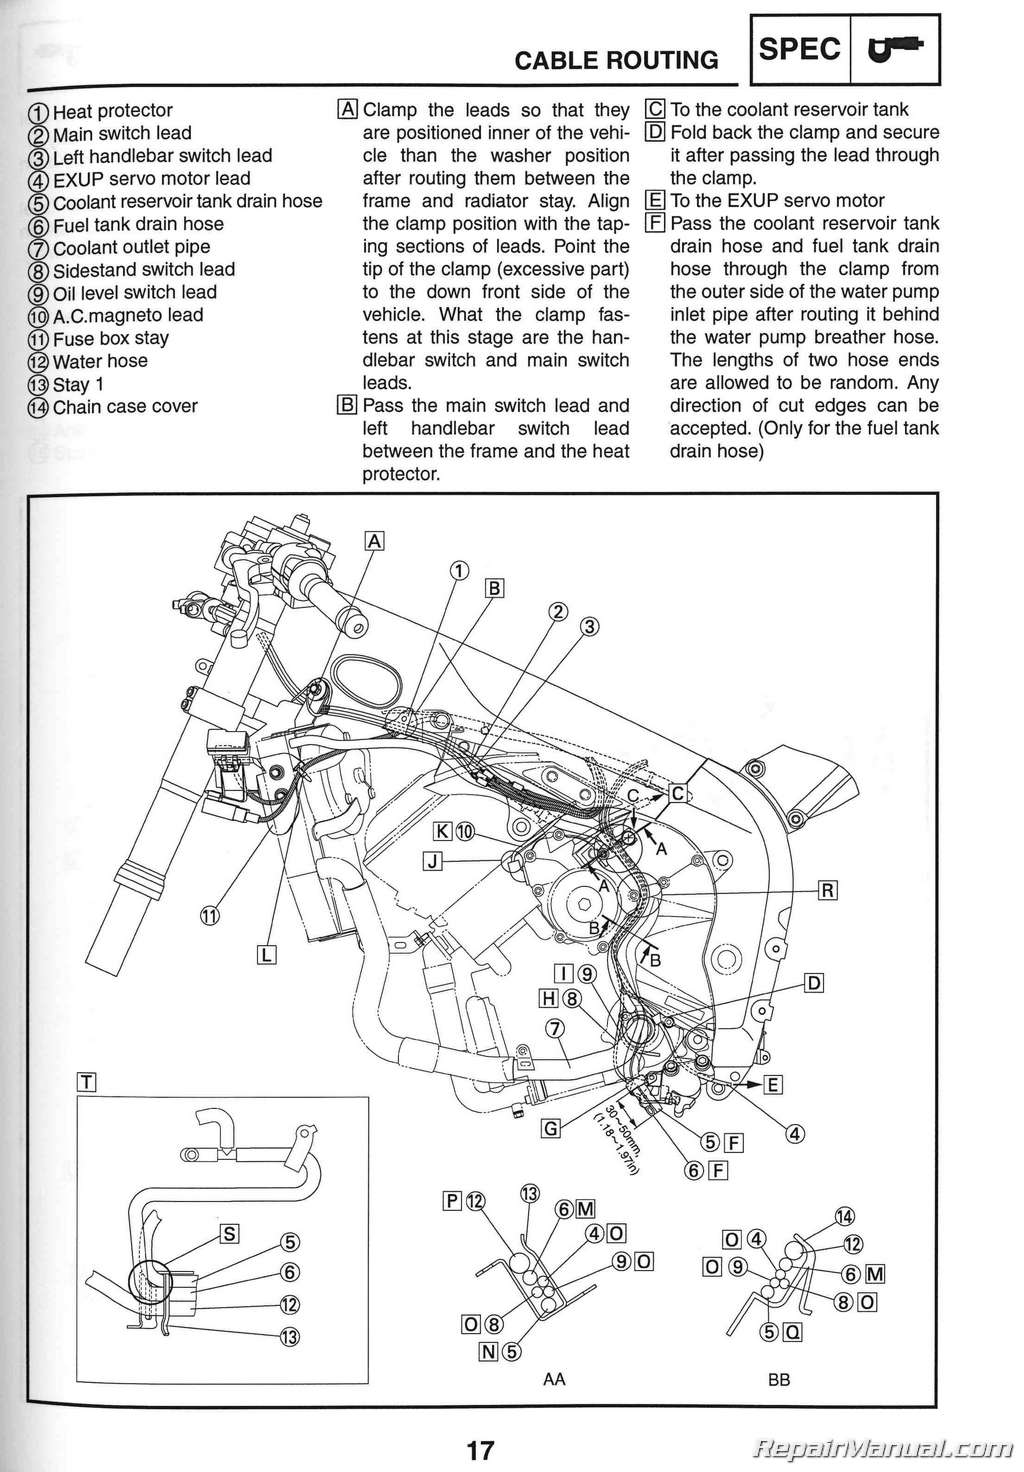 2012 Yzf R1 Wiring Diagram - All Diagram Schematics R Wiring Diagram on